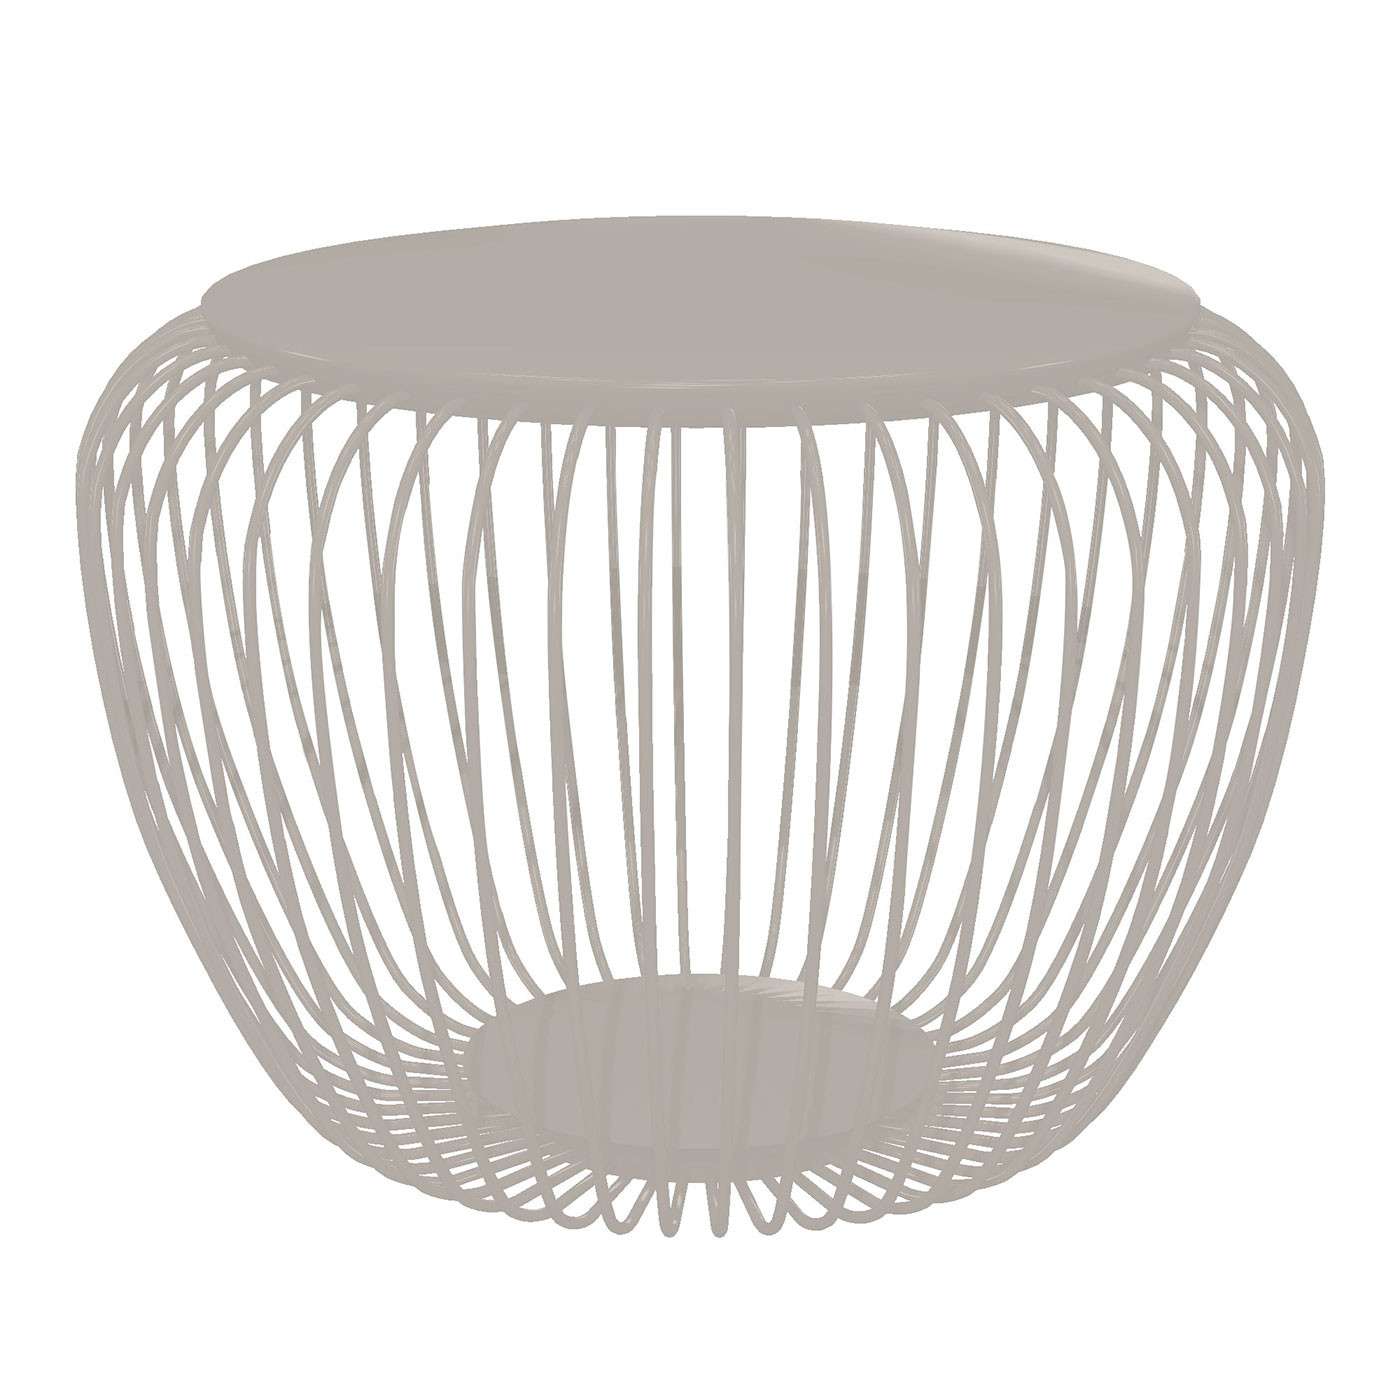 Vibia Meridiano 4710 Outdoor Bodenleuchte